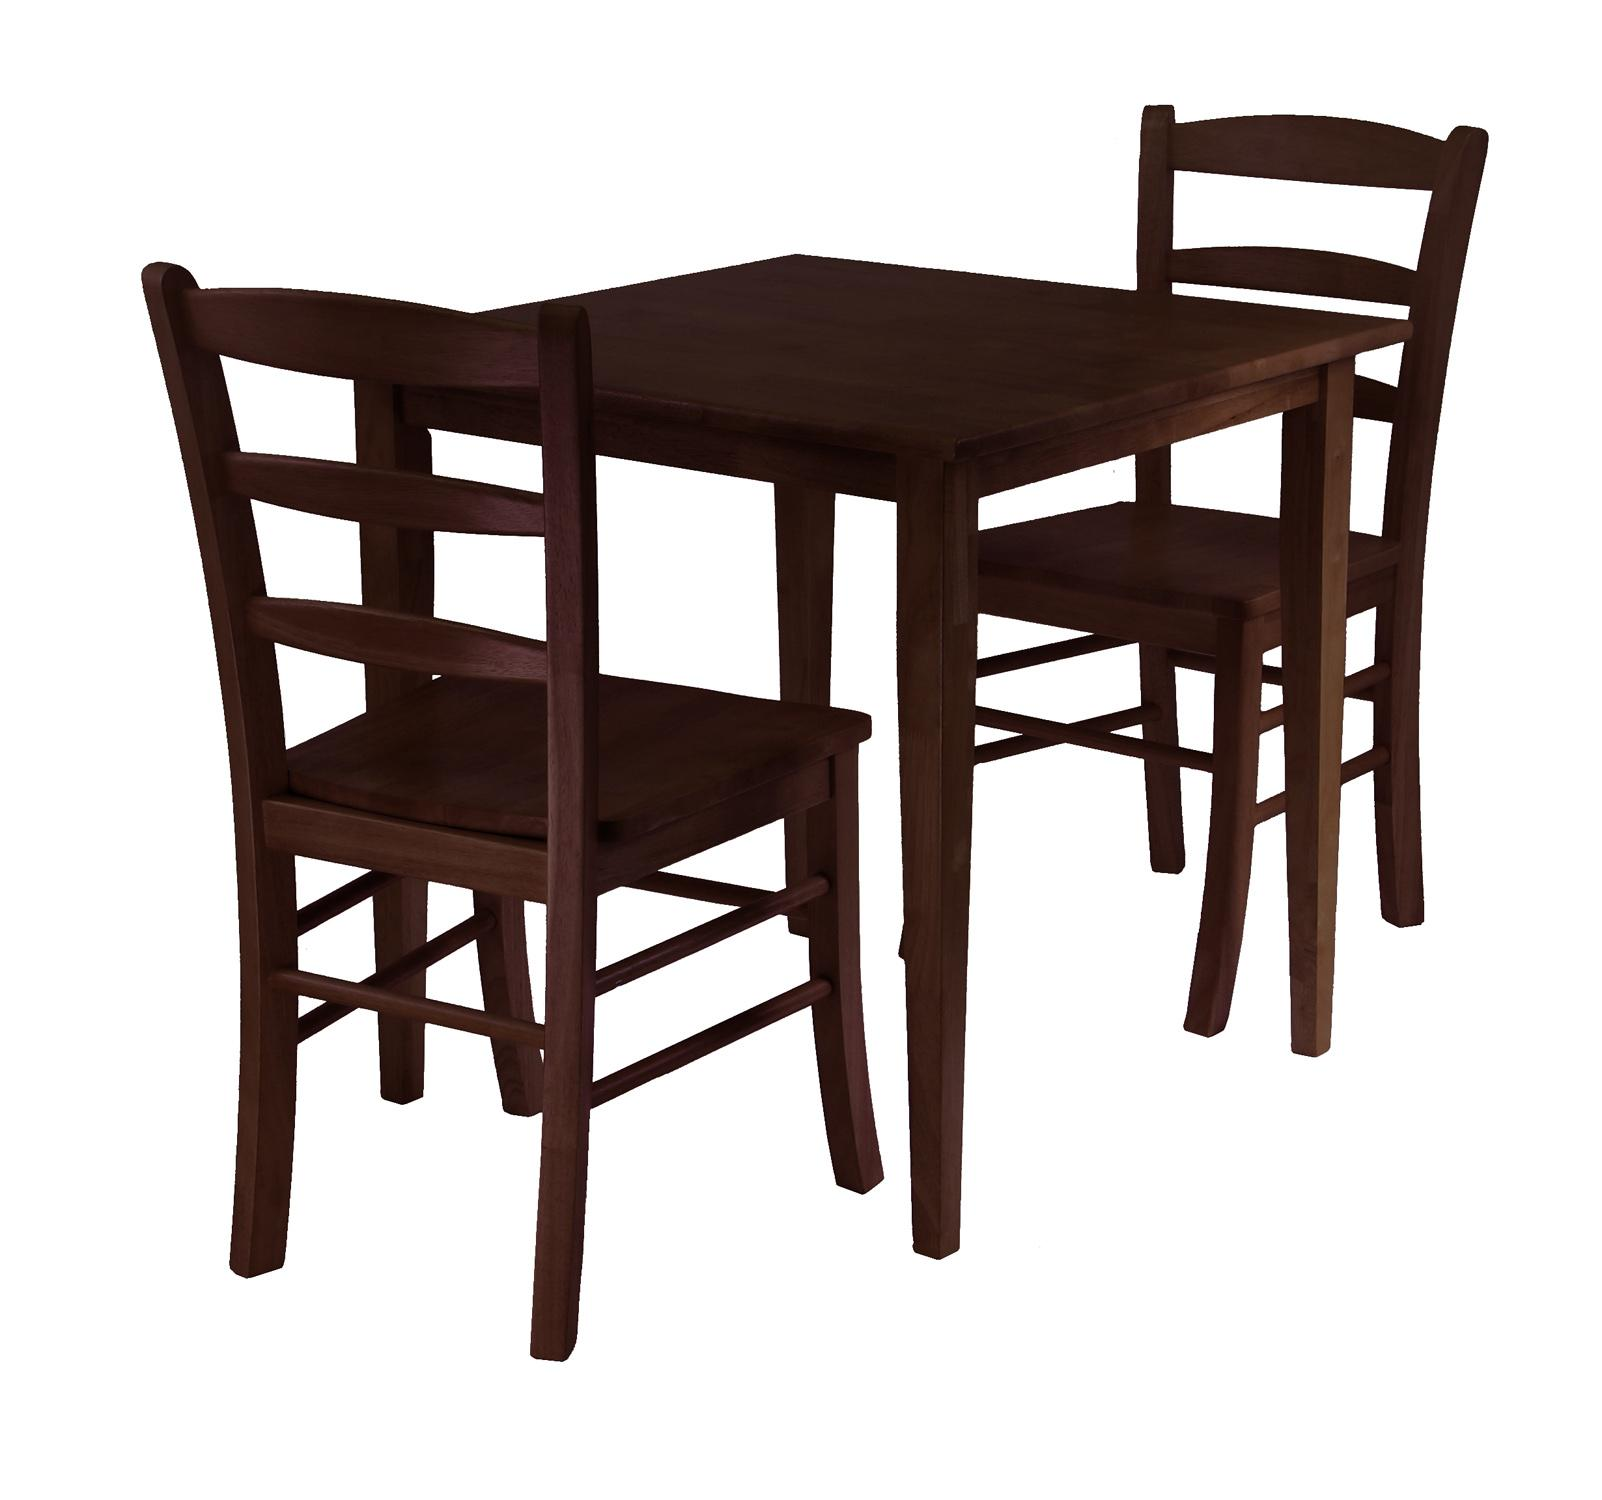 Winsome groveland 3pc square dining table with 2 chairs by for Small square dining room table